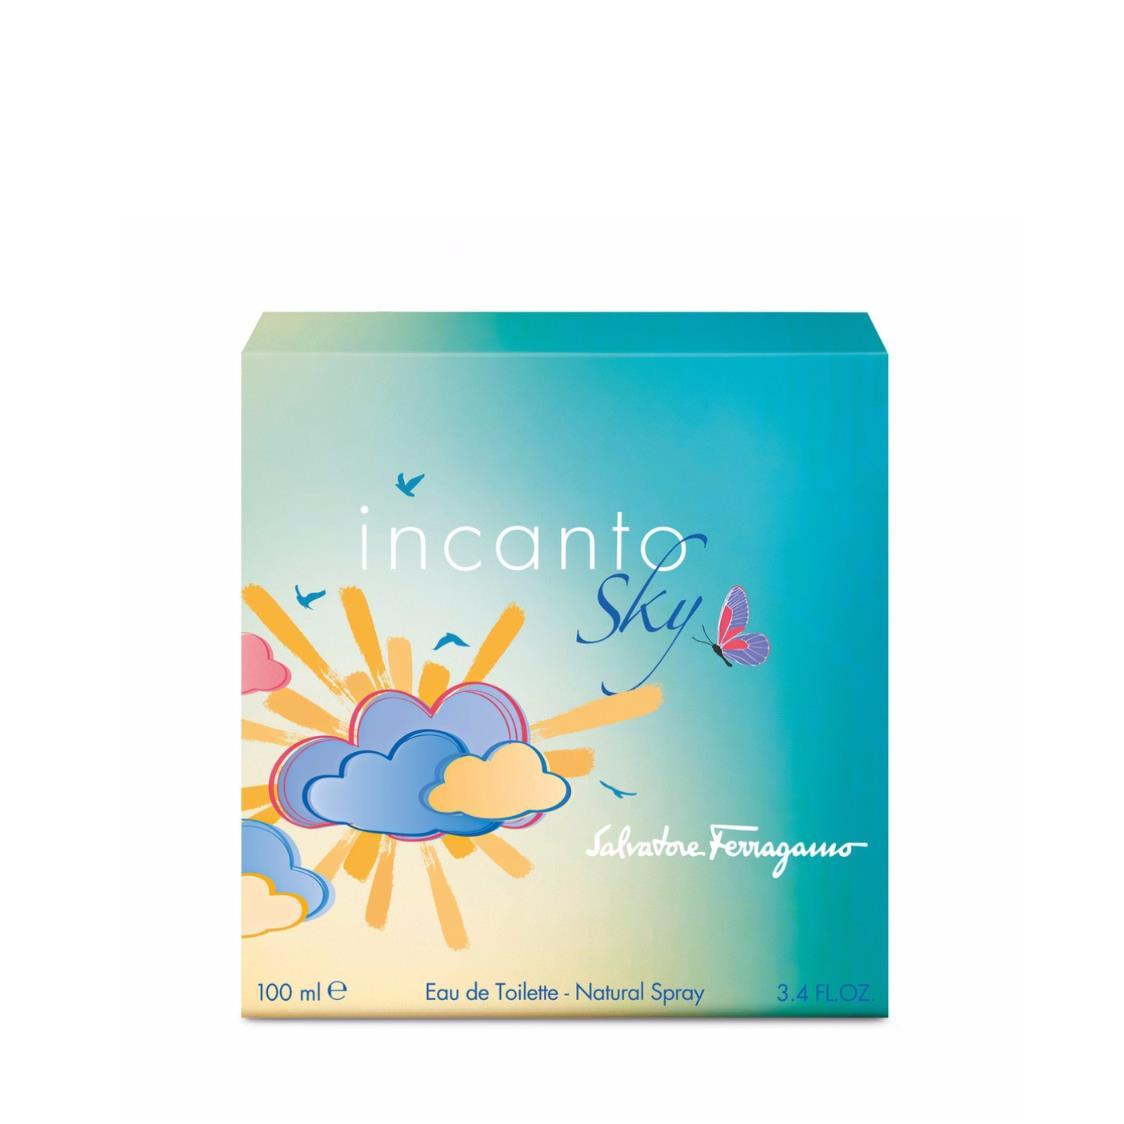 Incanto Sky EDT | Metro (Private) Limited